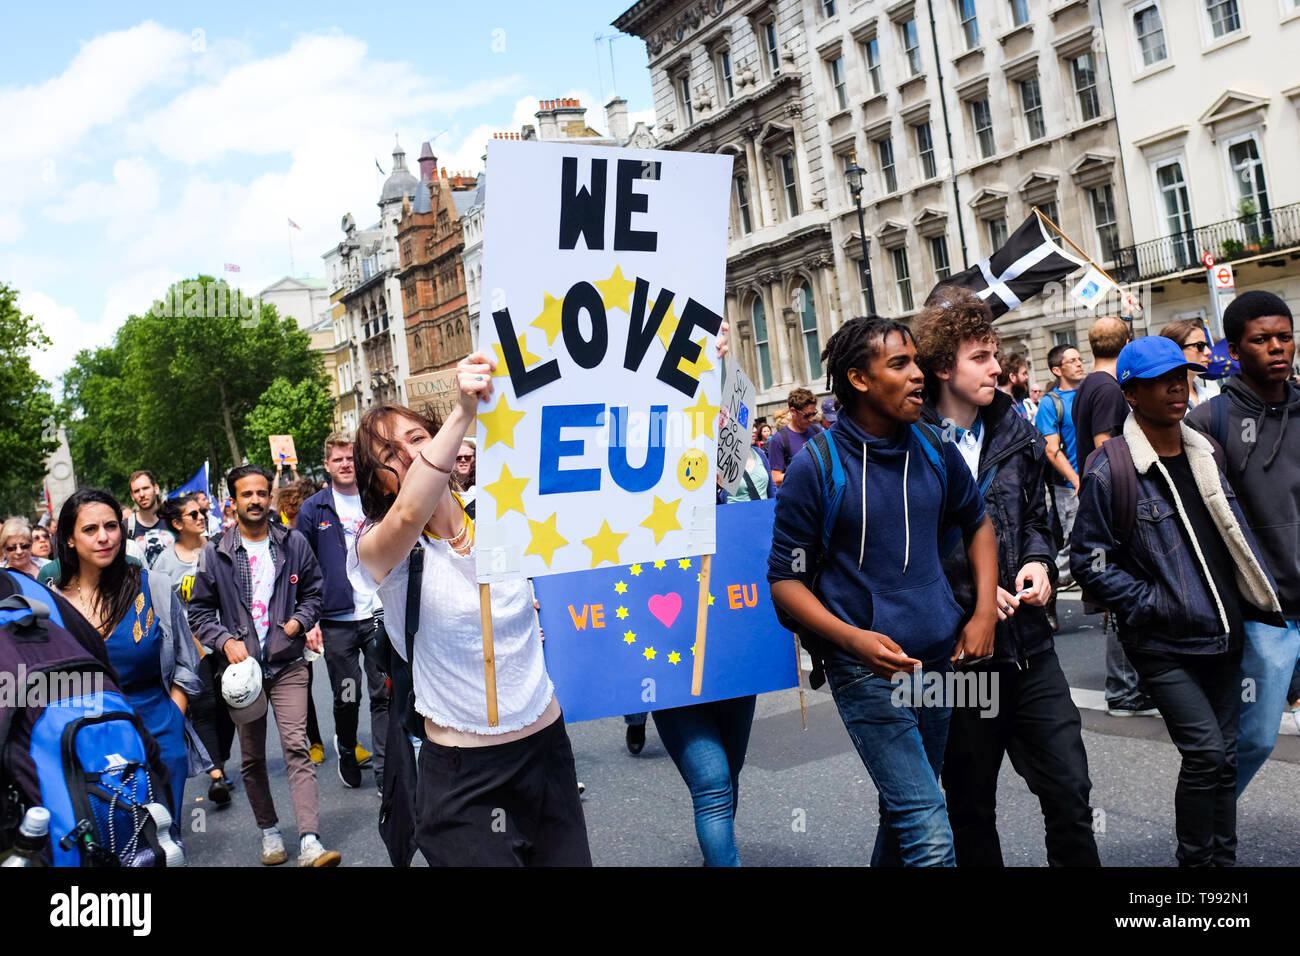 Participants at a pro-EU rally in London, England, on 2nd July, 2016. - Stock Image